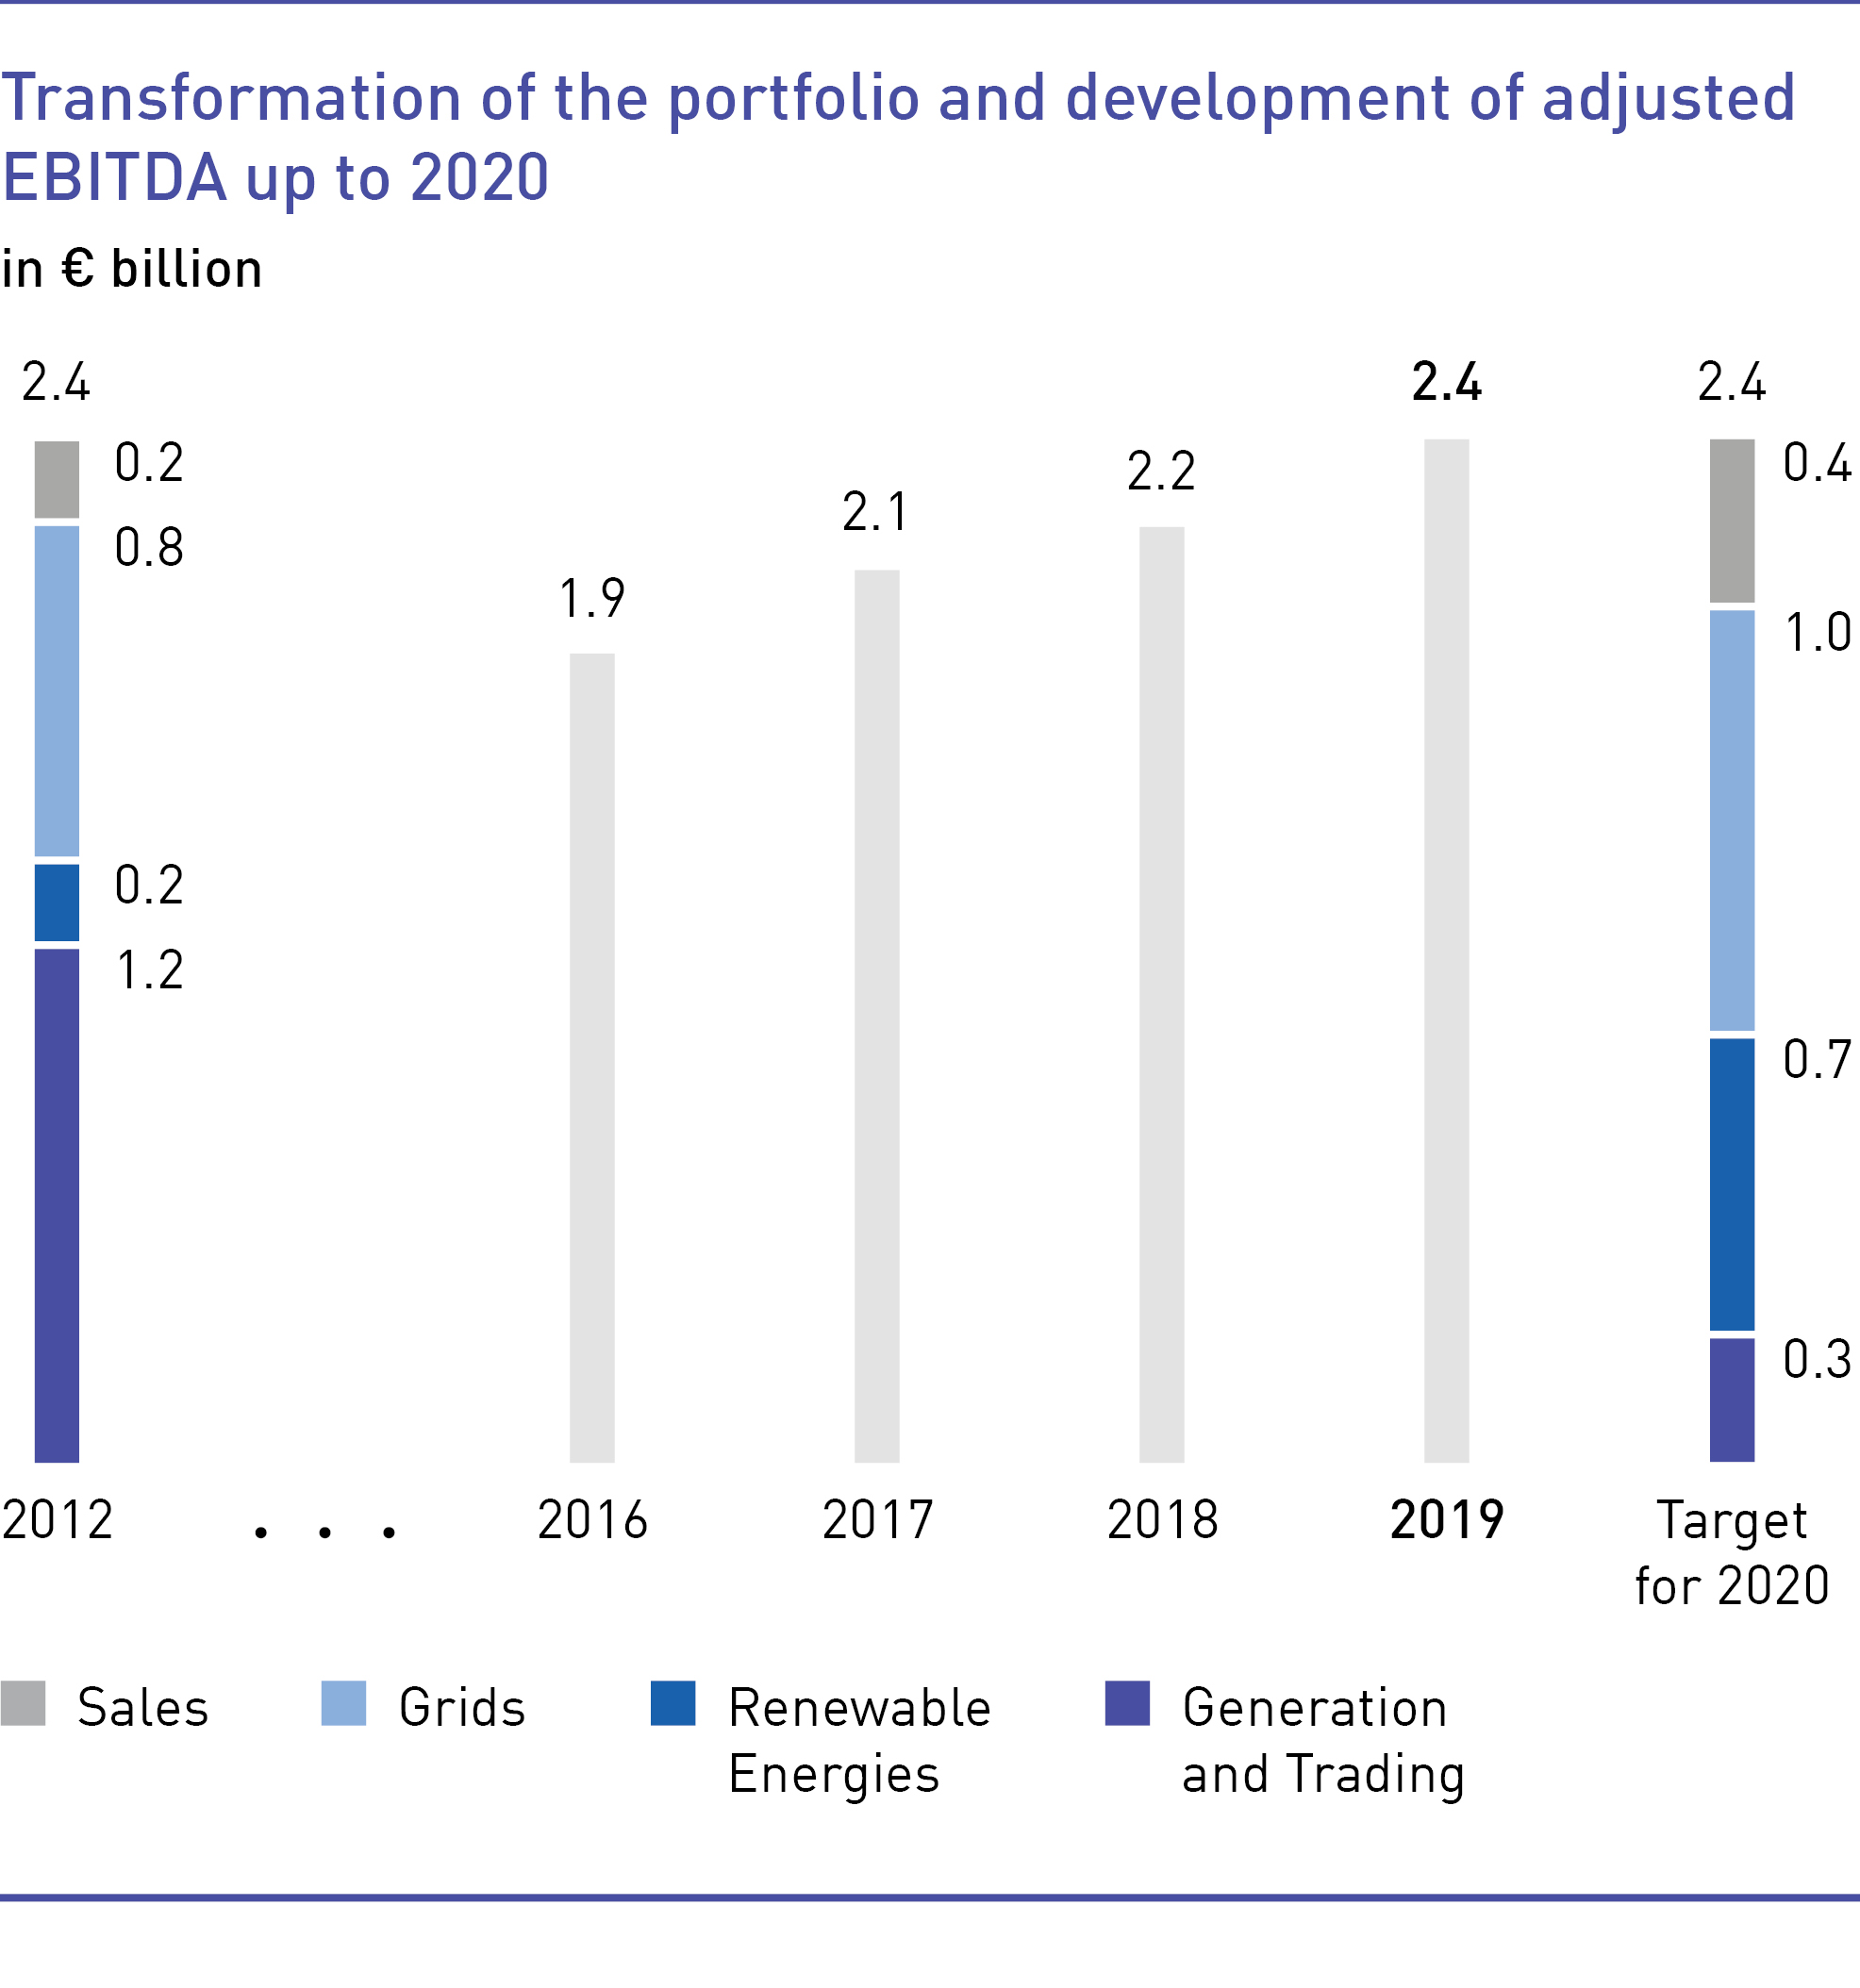 Transformation of the portfolio and development of adjusted EBITDA up to 2020